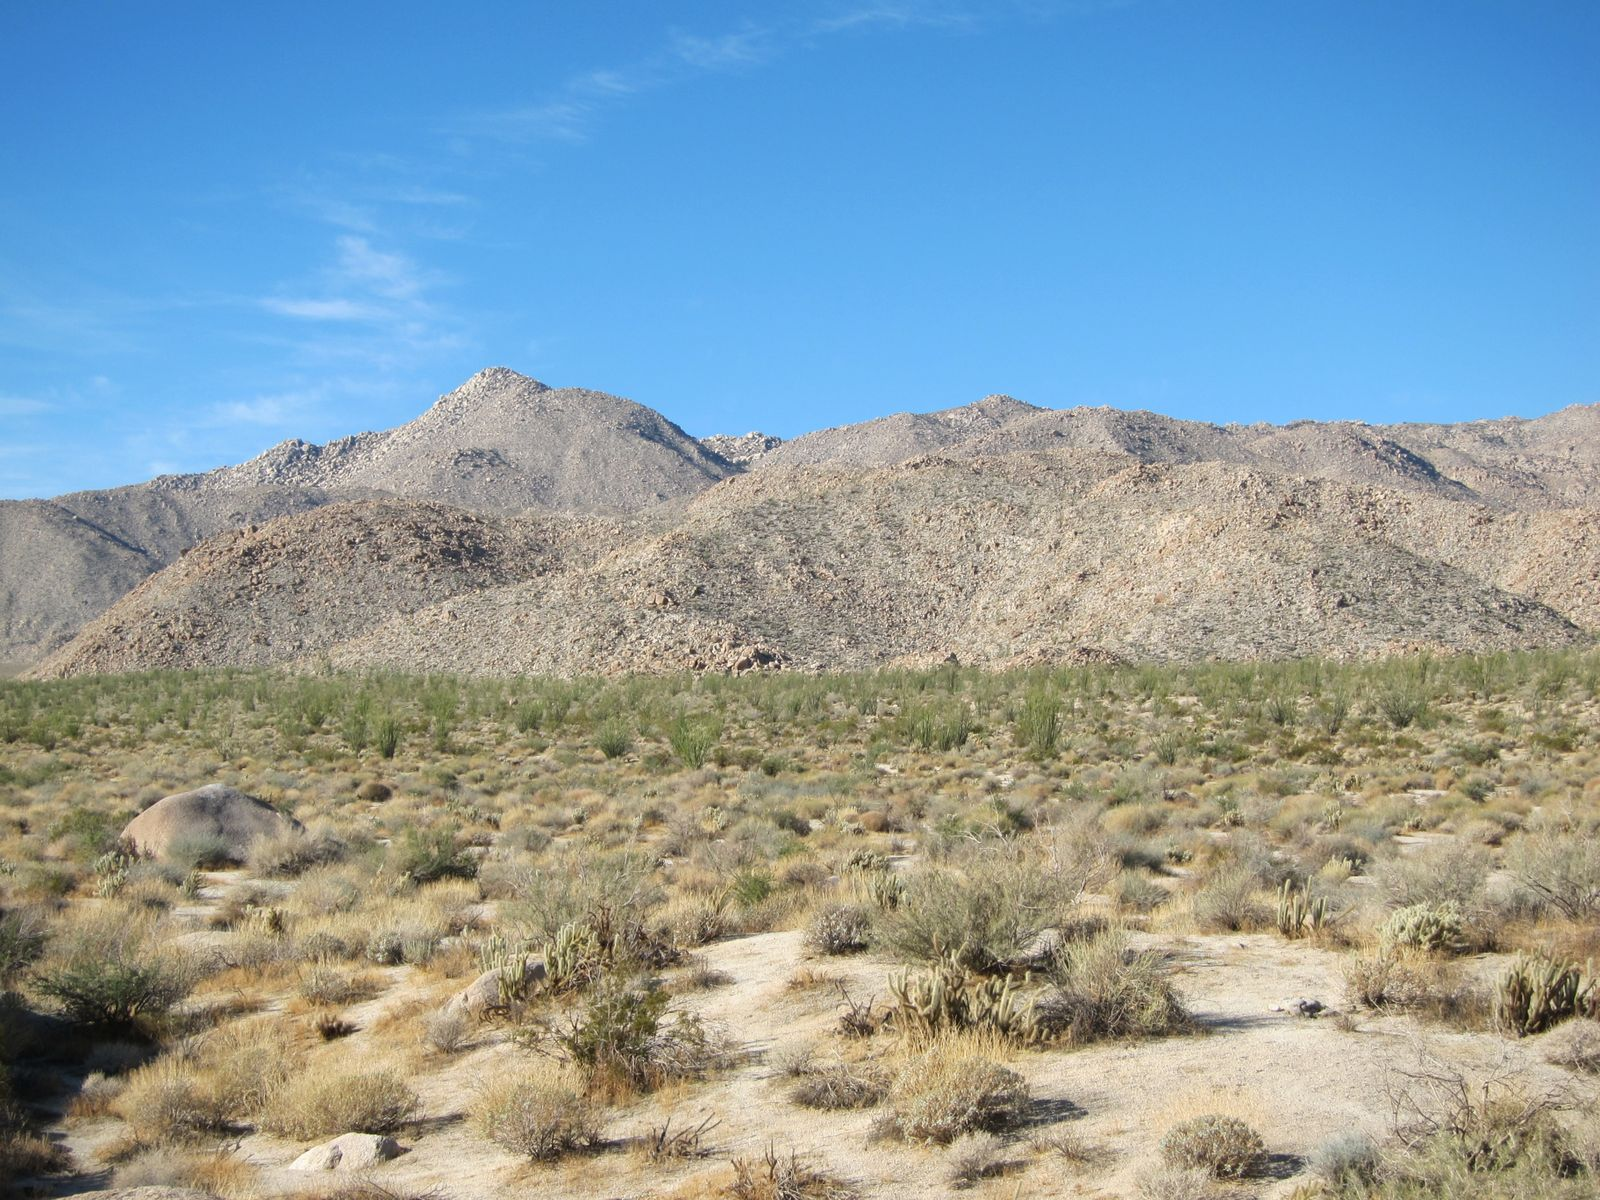 Sombrero Peak is the highest mountain in the Southern Anza Borrego Desert